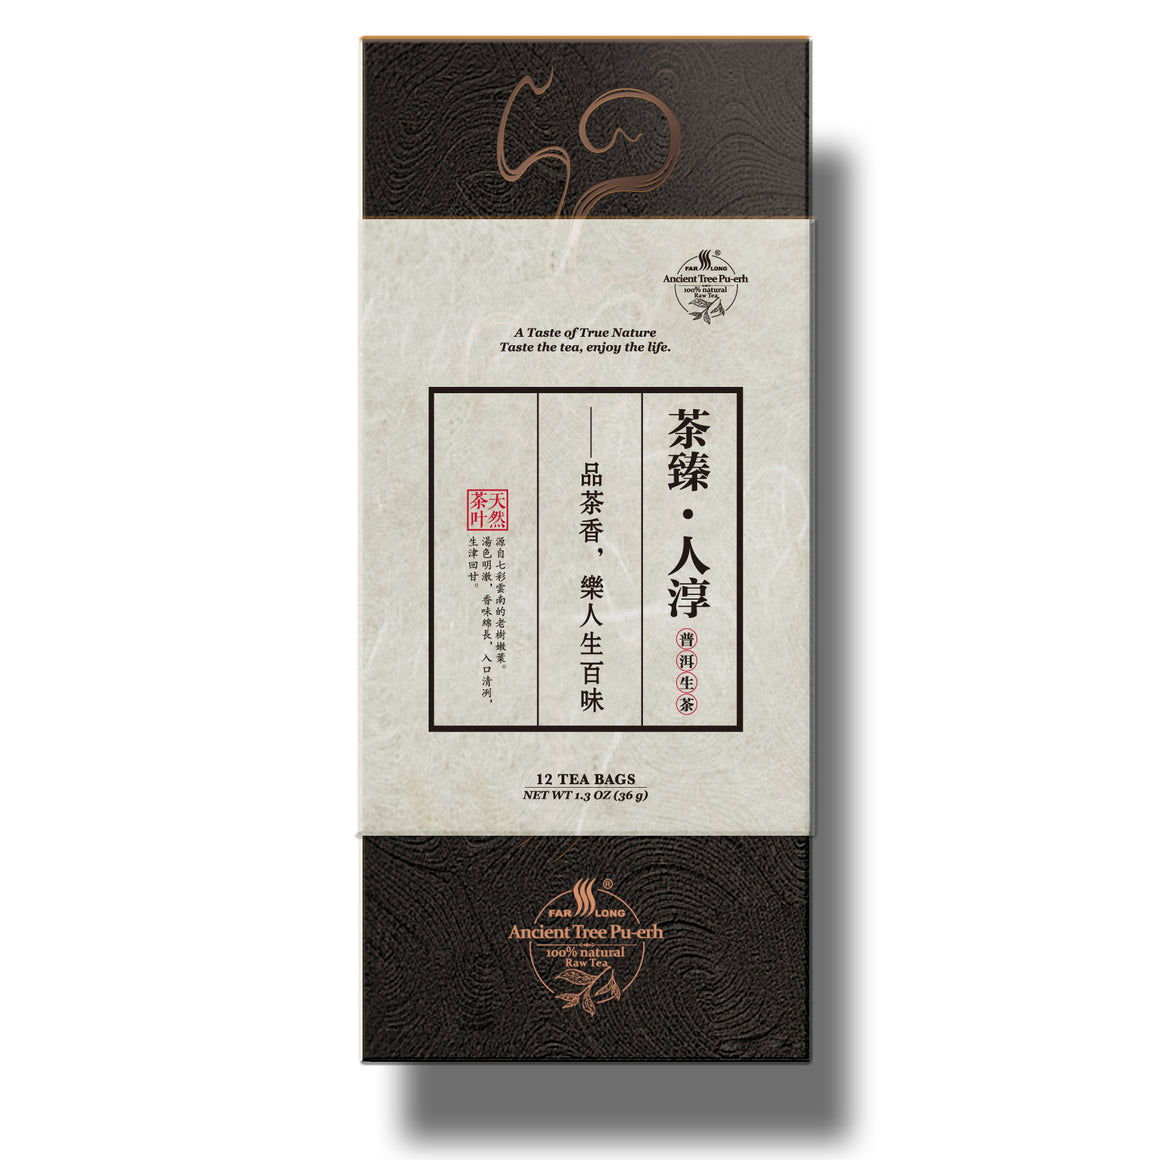 Ancient Tree Pu-erh Tea Bags